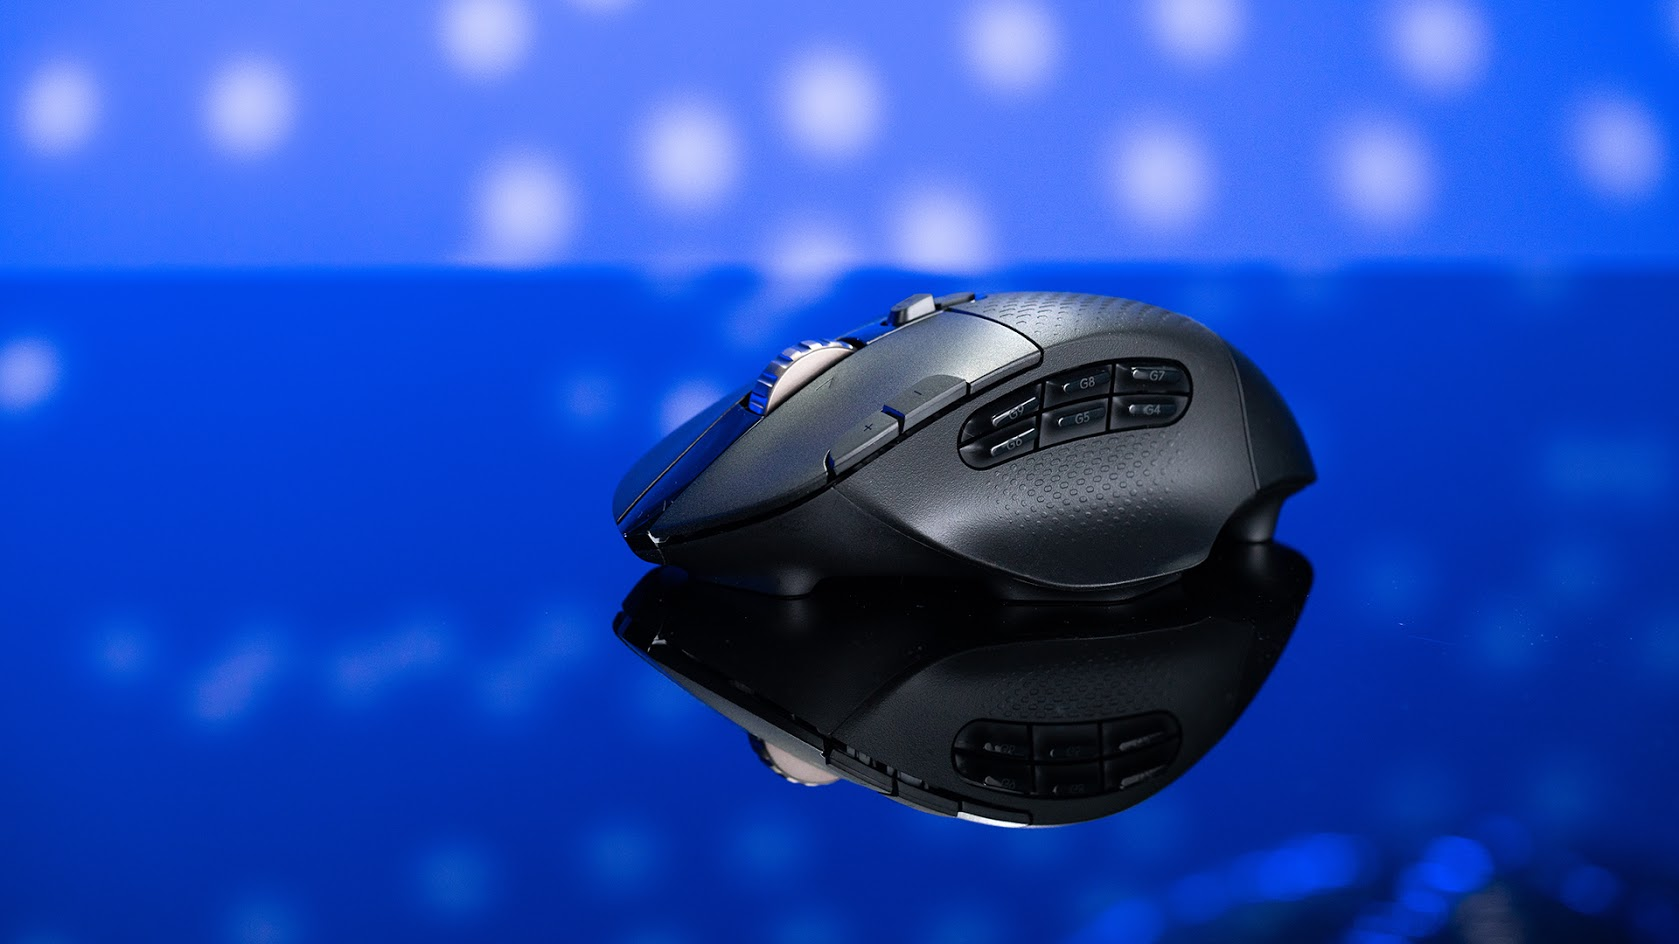 Logitech G604 Lightspeed: miglior mouse wireless gaming per MOBA e MMO